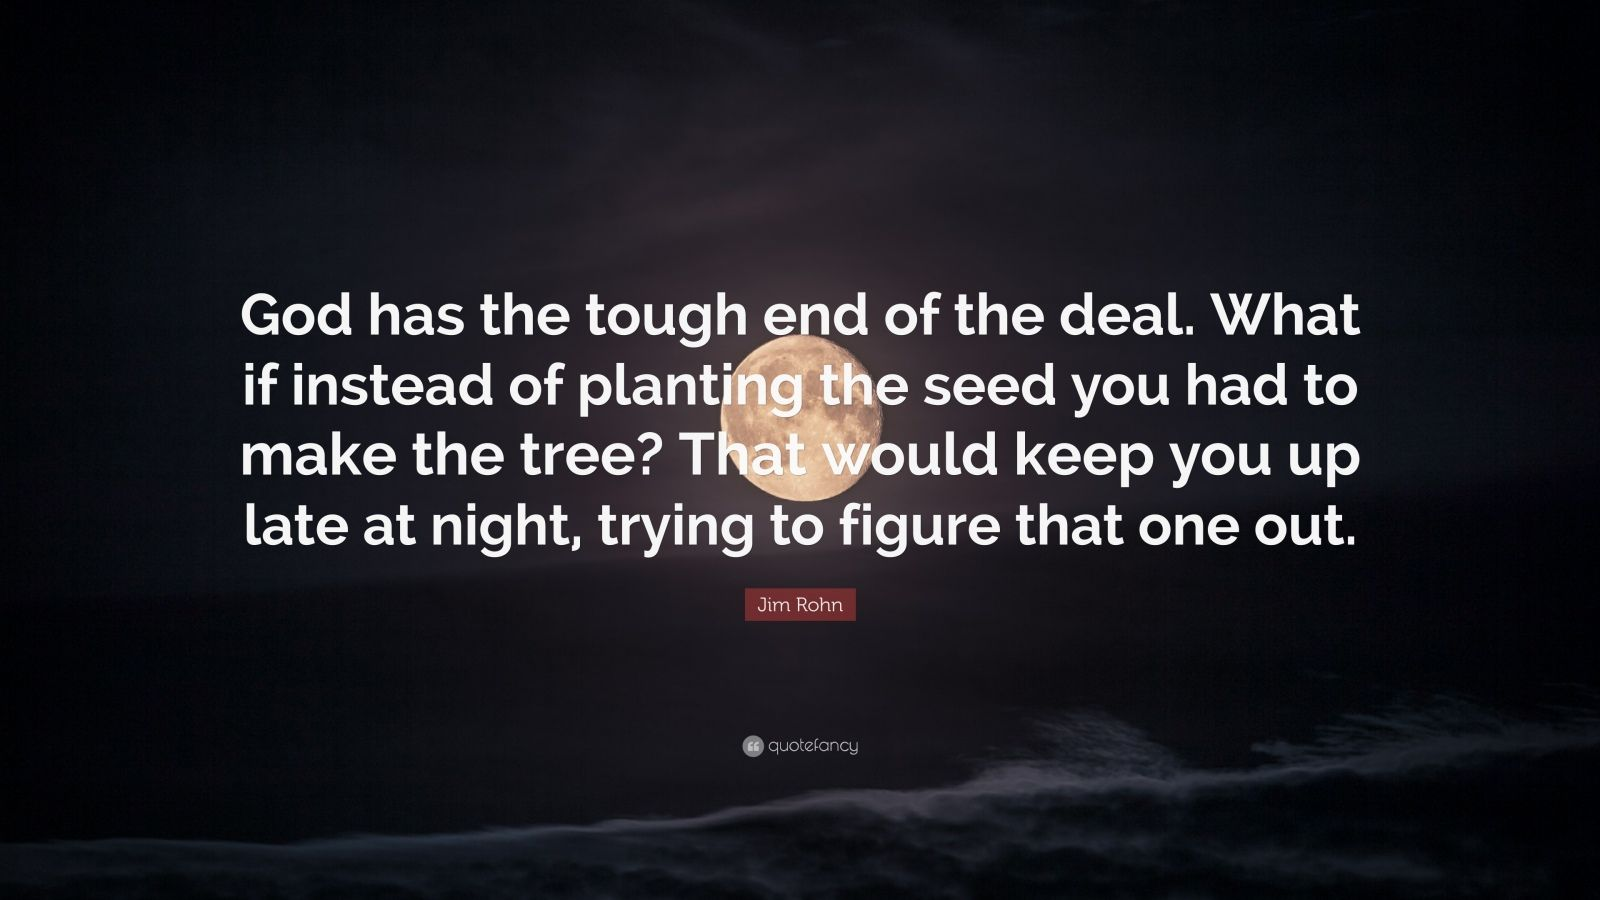 """Jim Rohn Quote: """"God has the tough end of the deal. What if instead of planting the seed you had to make the tree? That would keep you up late at night, trying to figure that one out."""""""